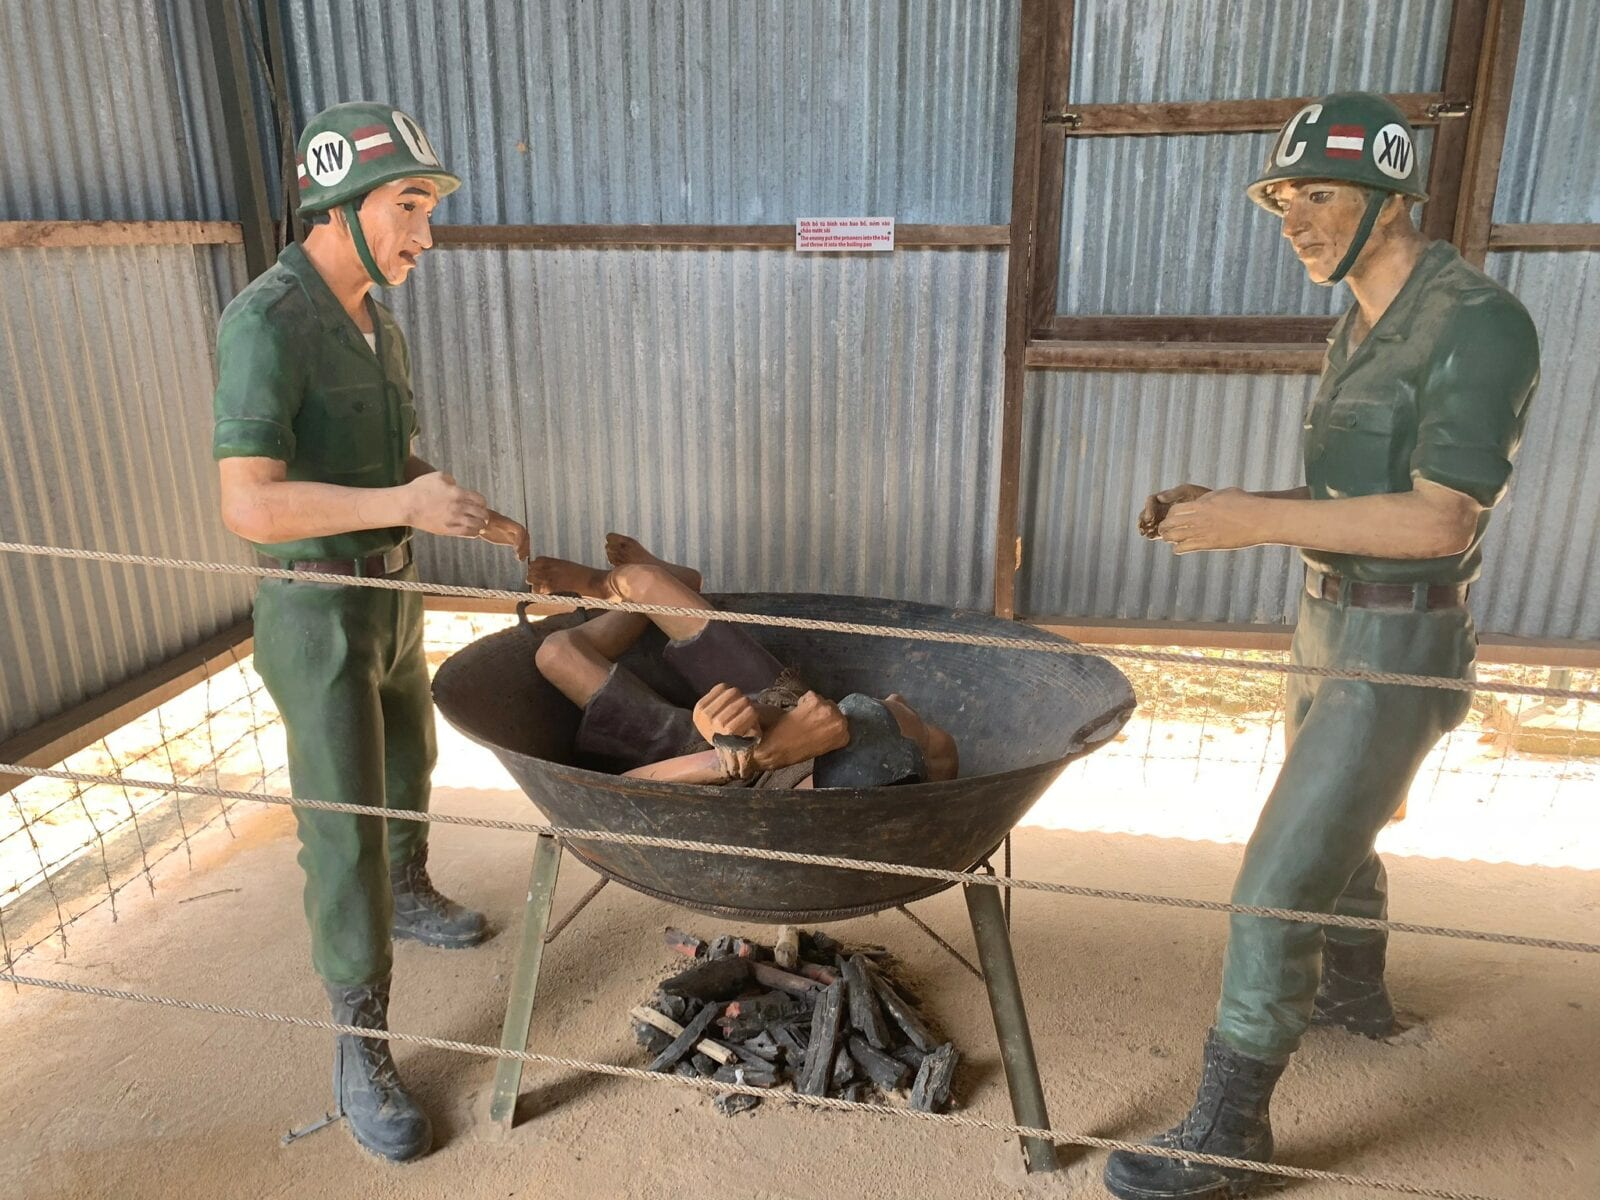 Image of a display showing a POW being tortured by soldiers at the Phu Quoc Prison Museum in Vietnam